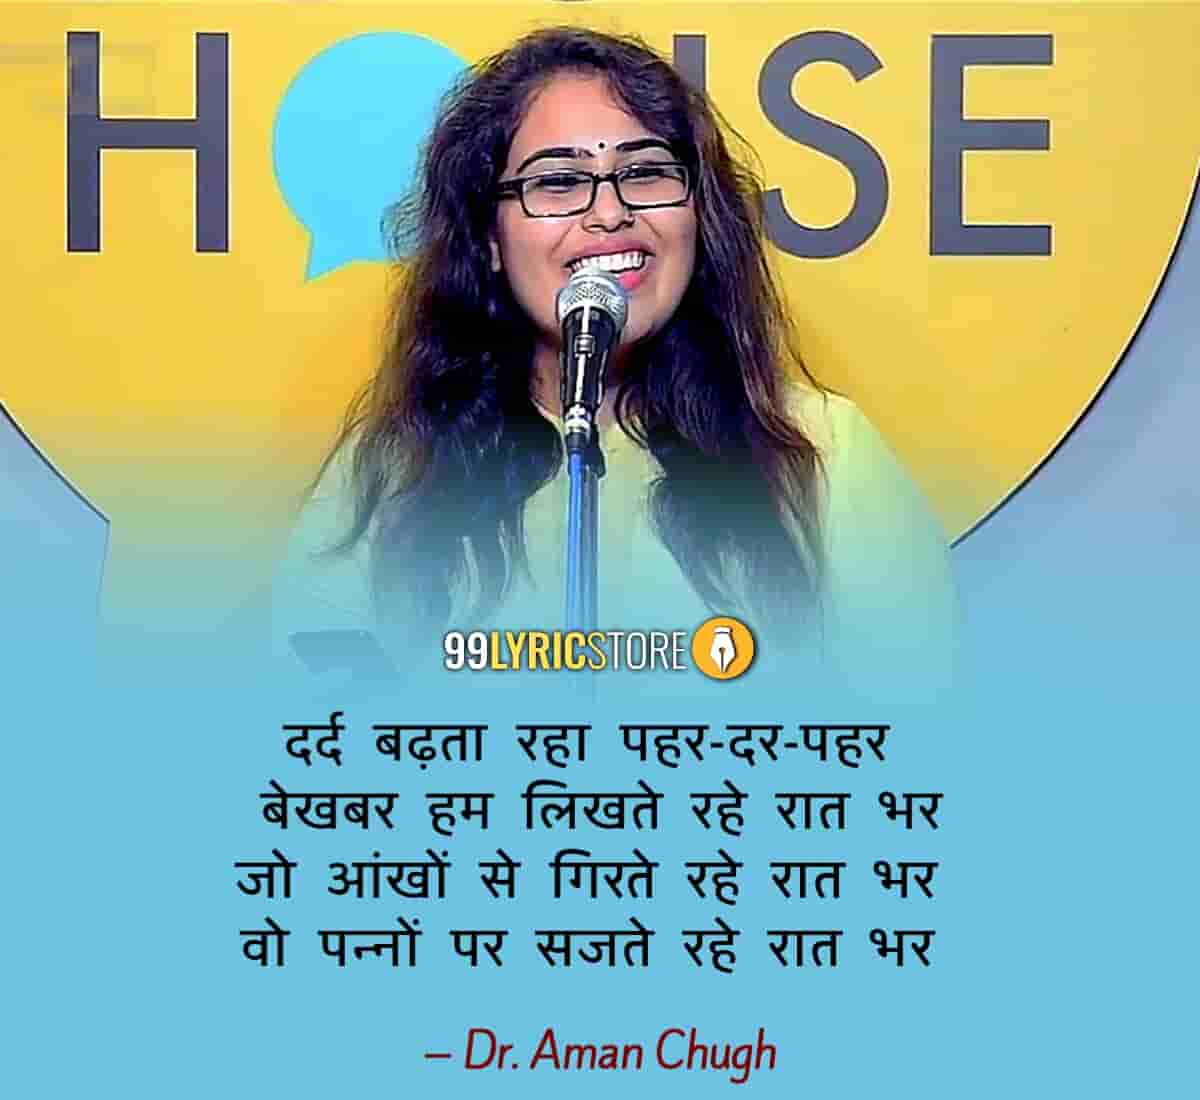 This beautiful poetry 'Kya Baat Hai' has written and performed by Dr. Aman Chuhg on The Social House's Plateform.